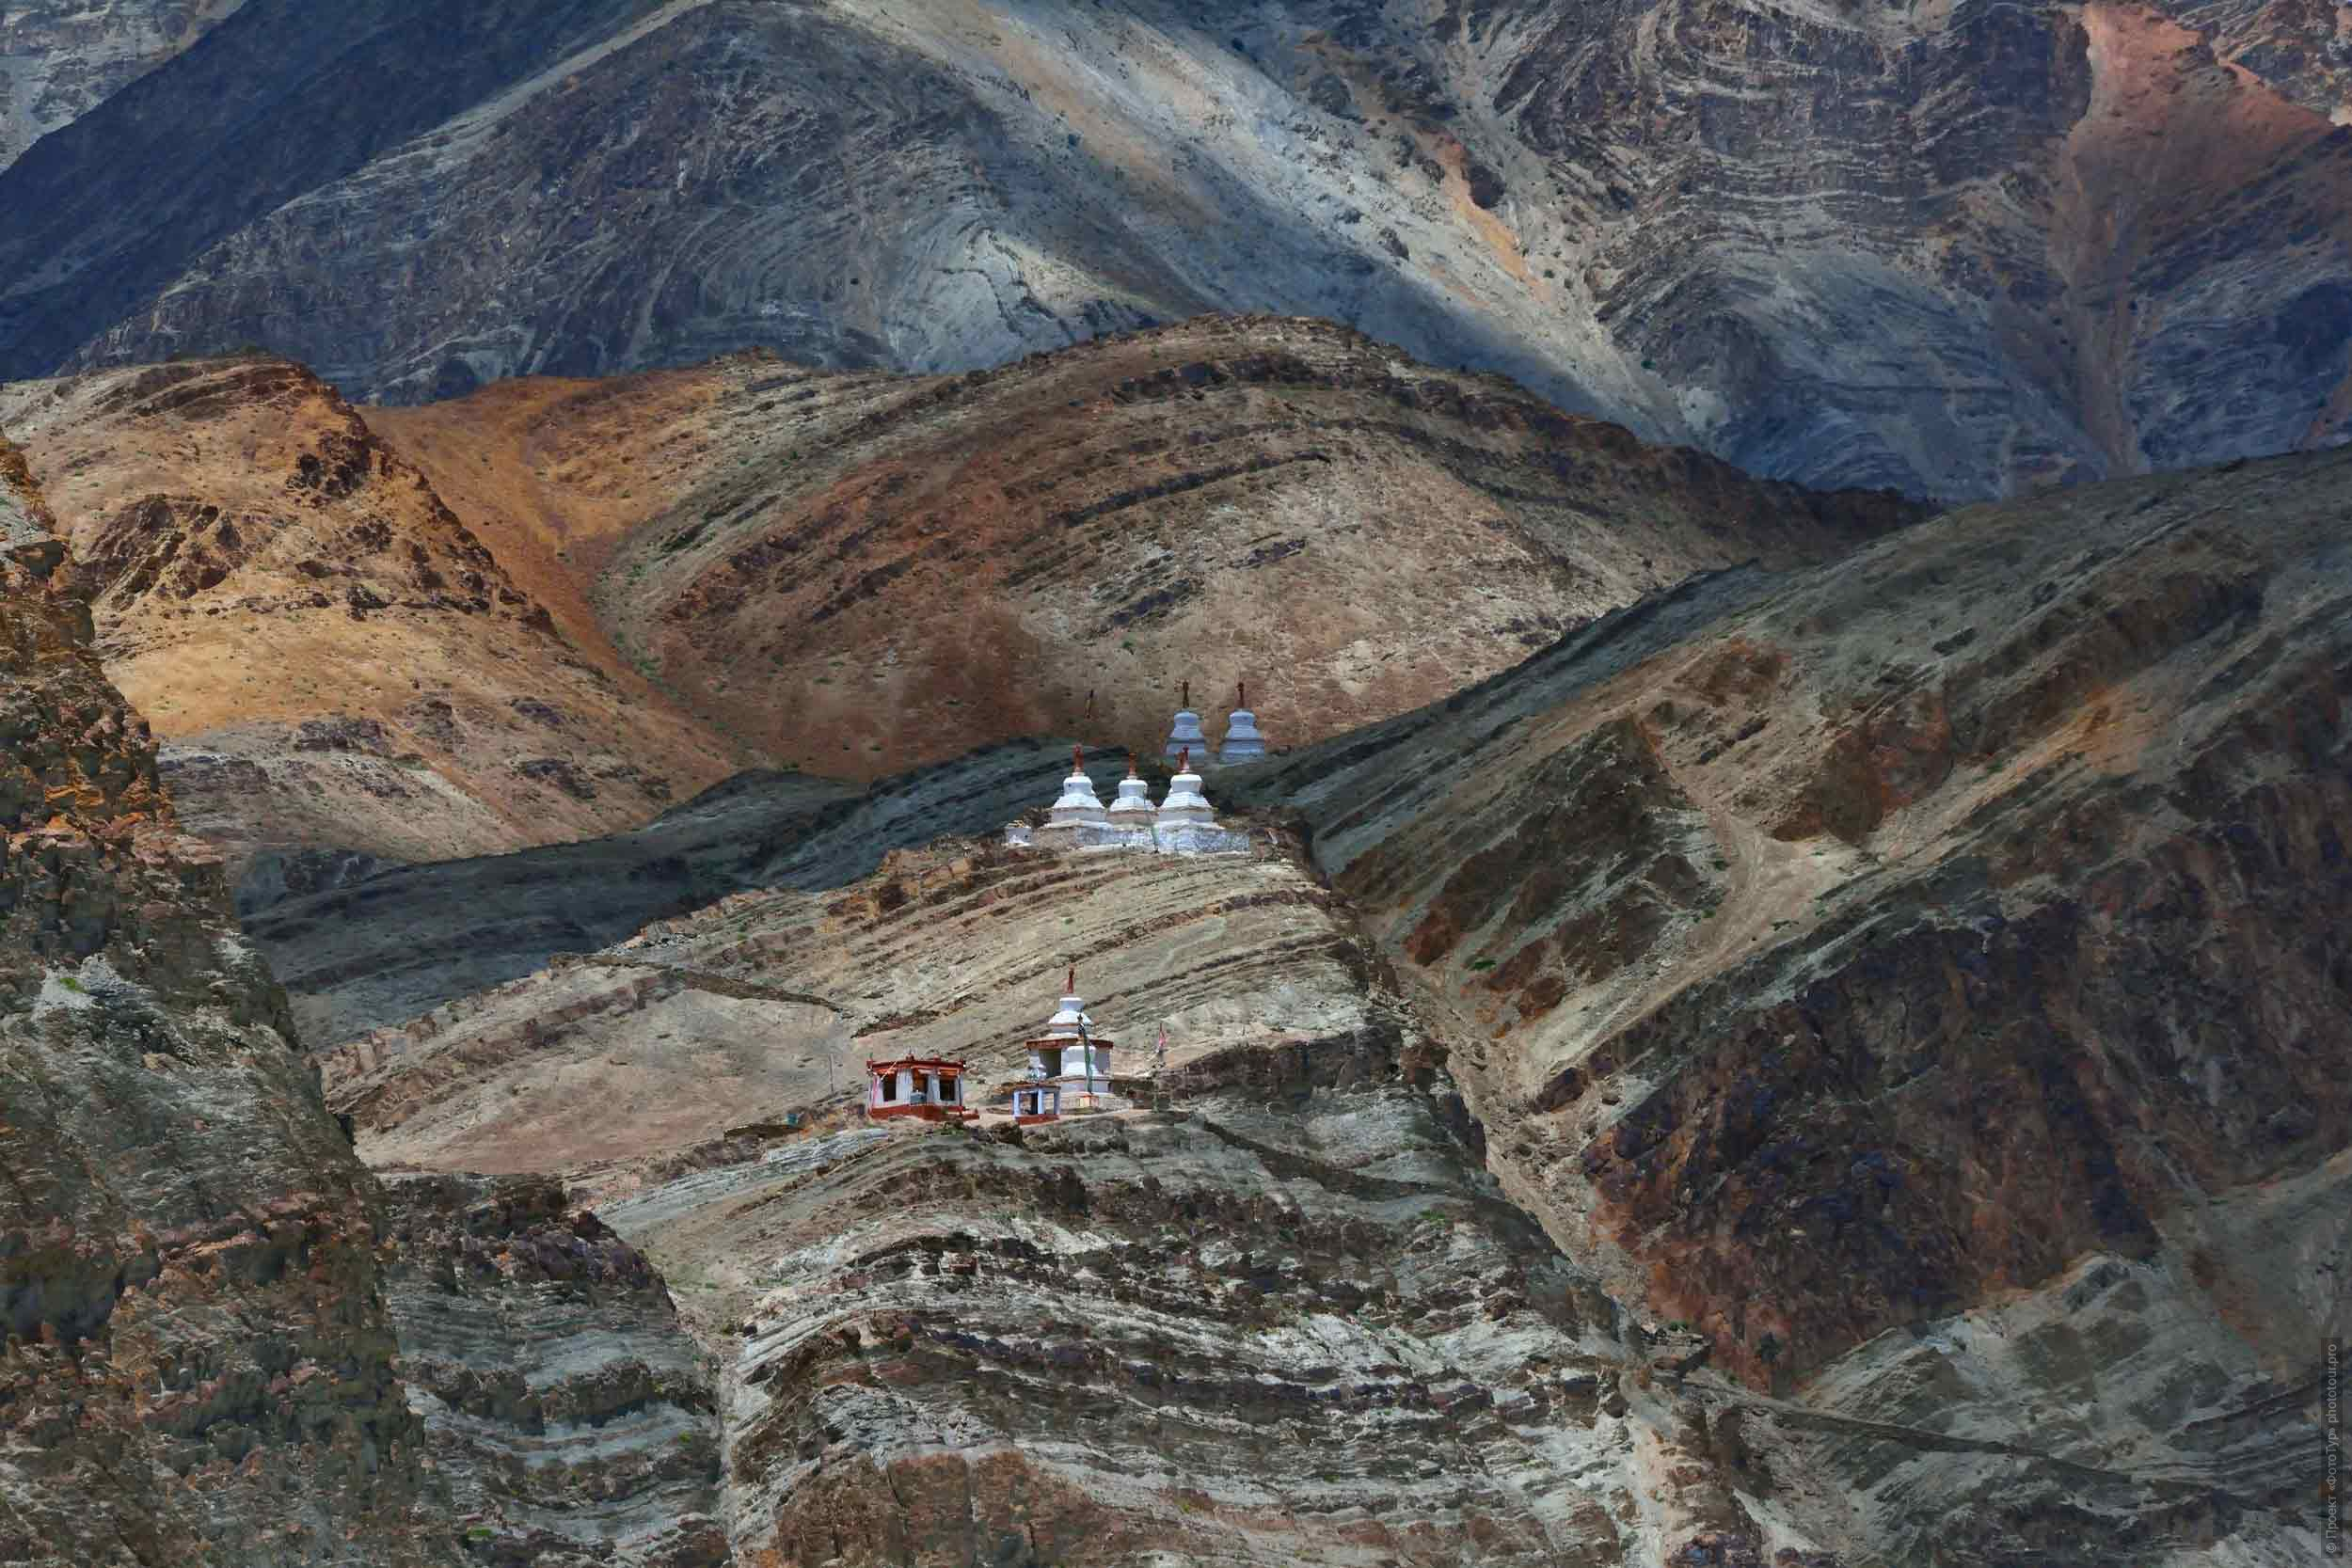 Aryan valley Da Khan. Tour Legends of Tibet: Ladakh, Lamayuru, Da Khan and Nubra, 19.09. - 28.09.2019 G.